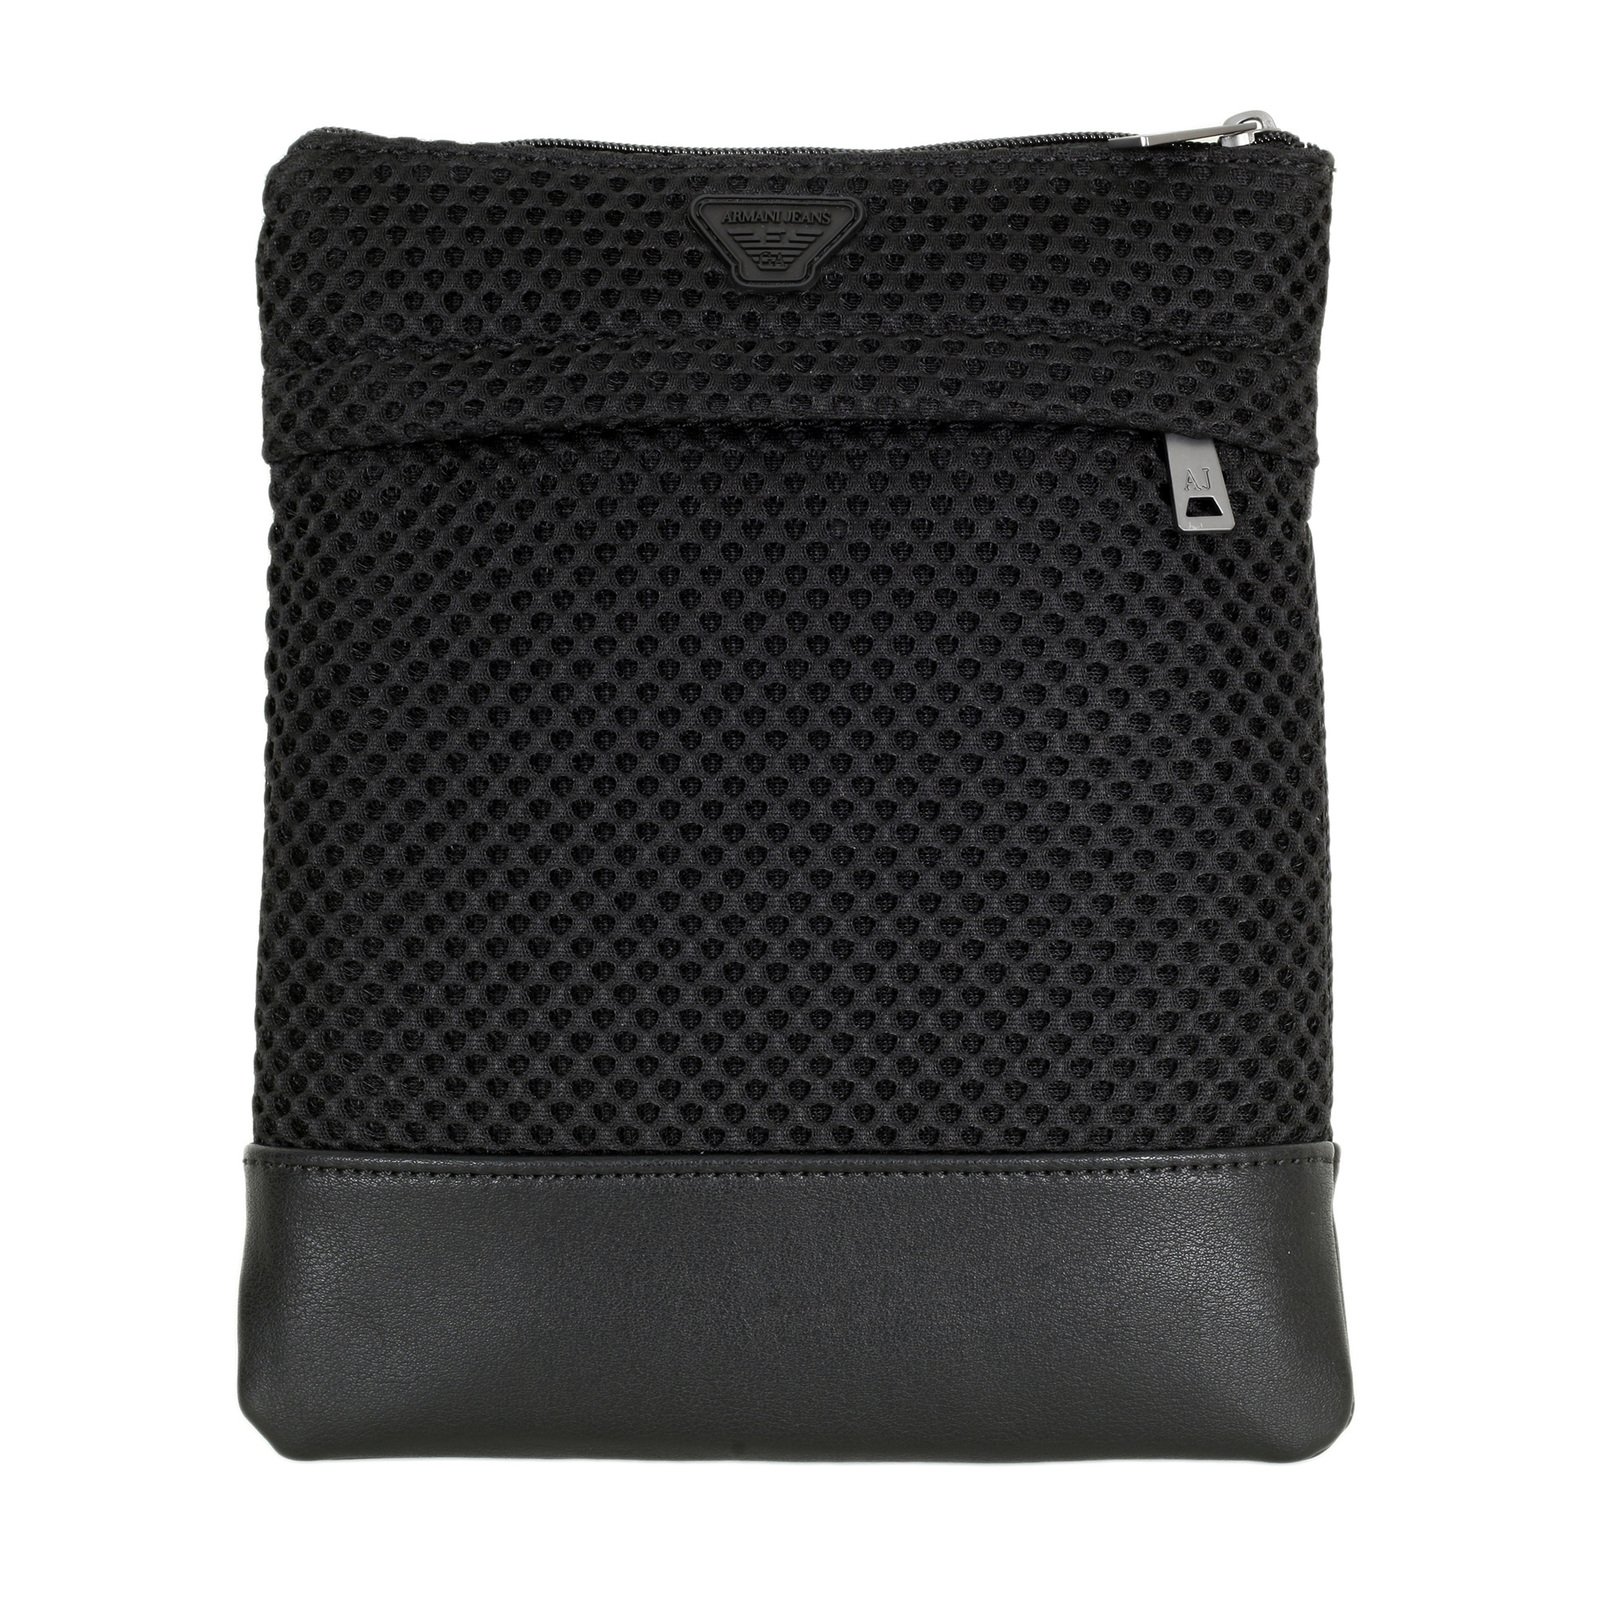 Black Messenger Bag with a Mesh Front and a Smooth Back dc4bbb1fe7dd5